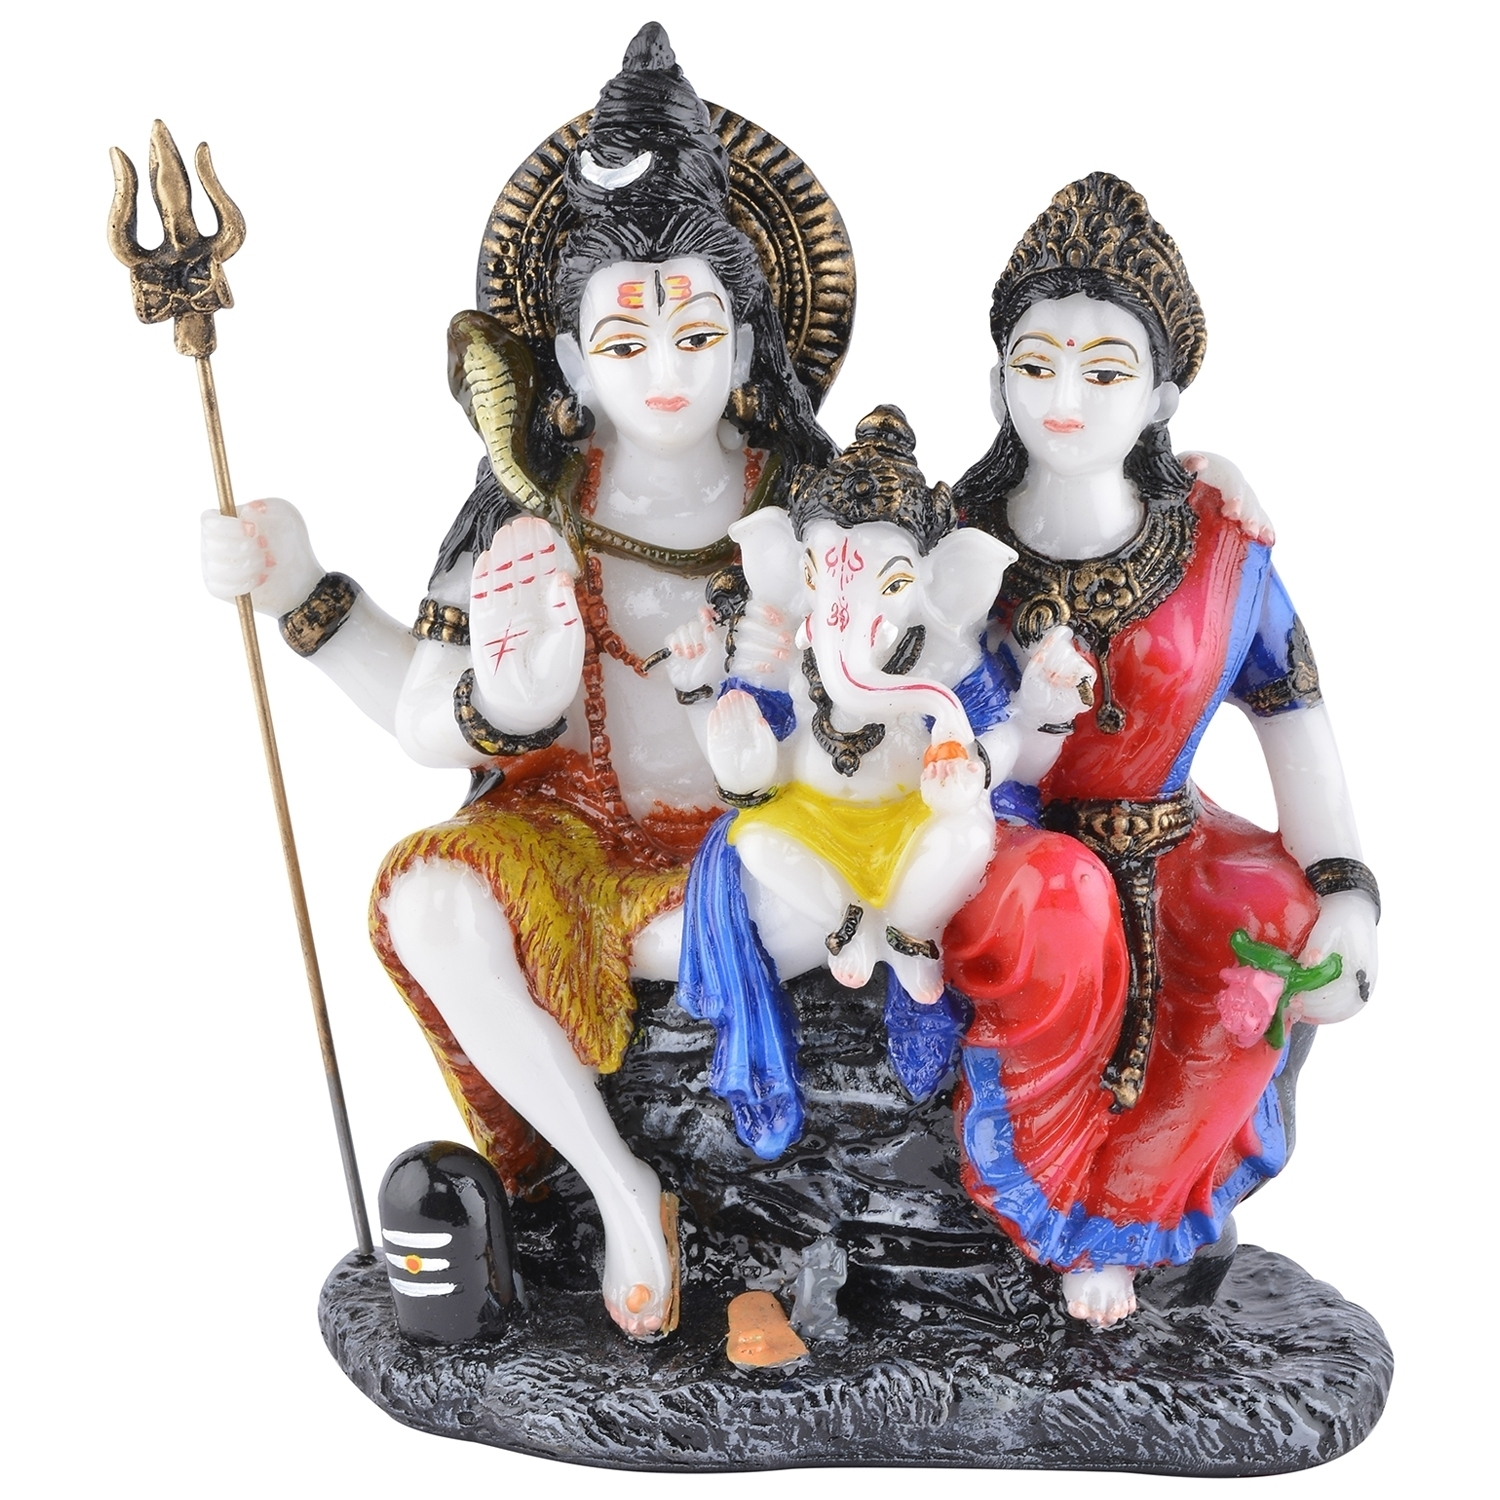 Decorative Blessing Lord Shiva, Goddess Parvati and Lord Ganesha Showpiece Indian Home Decor